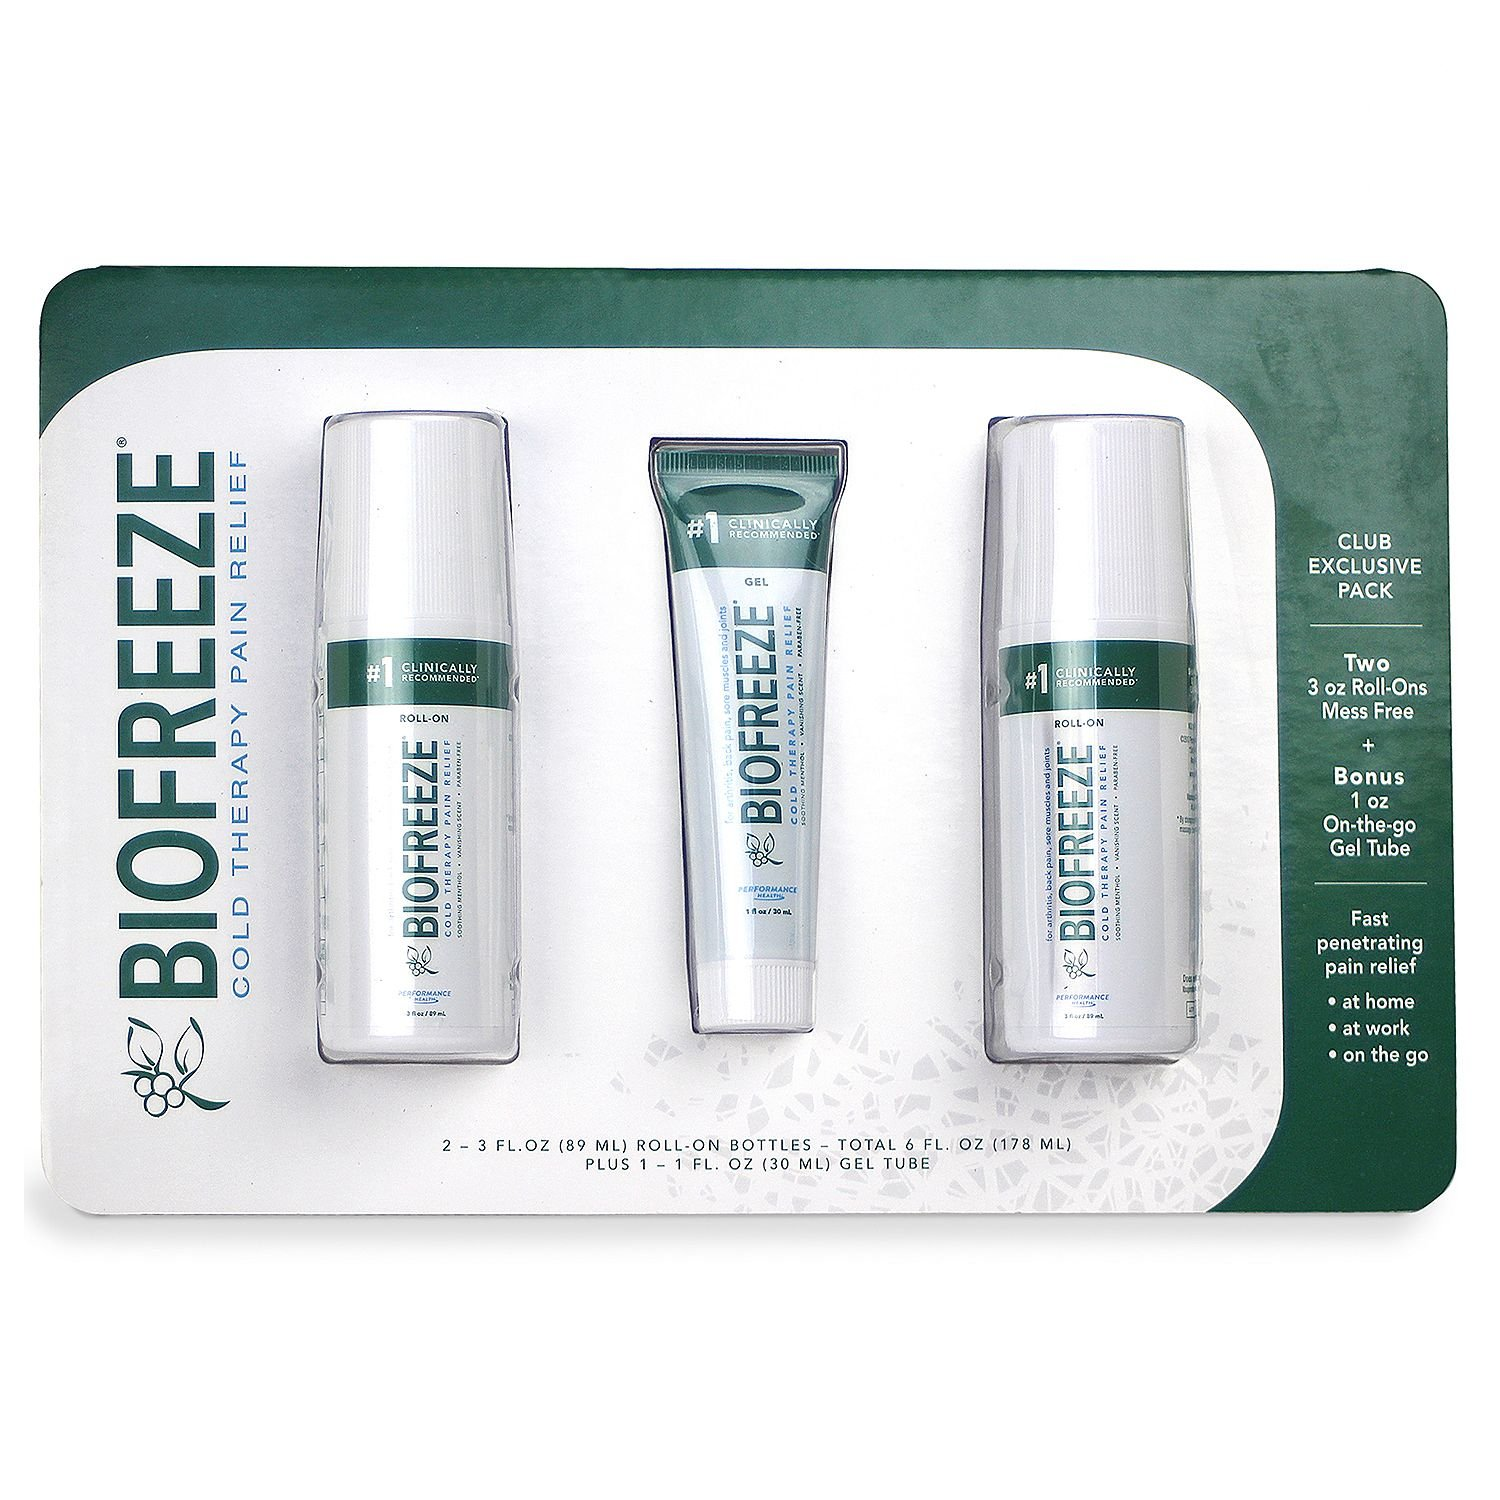 Biofreeze Cold Therapy Pain Relief, CLUB EXCLUSIVE PACK Two 89ml Roll-Ons Mess Free + 1 30 ml on the go gel Tube